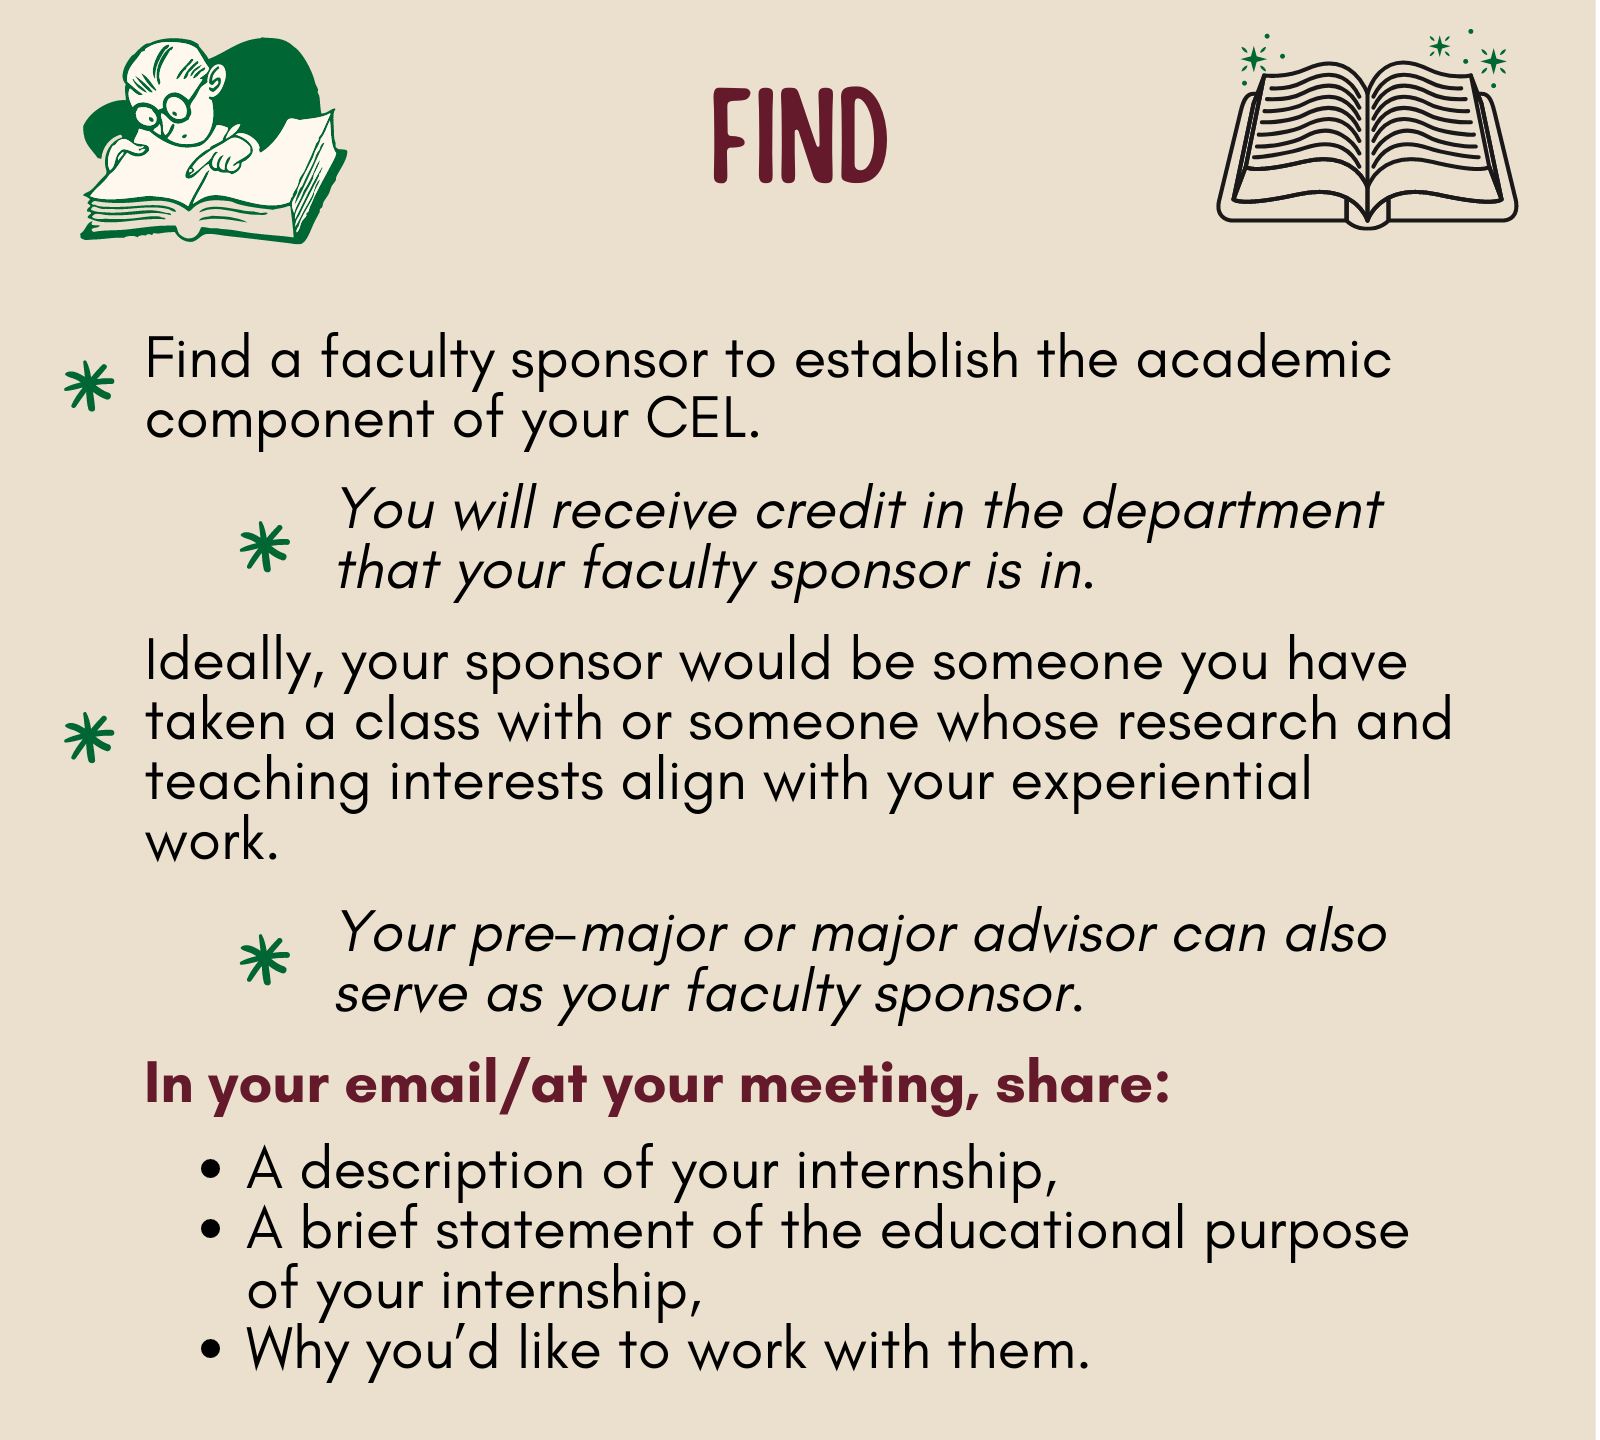 Find a faculty sponsor to oversee the academic component of your CEL.